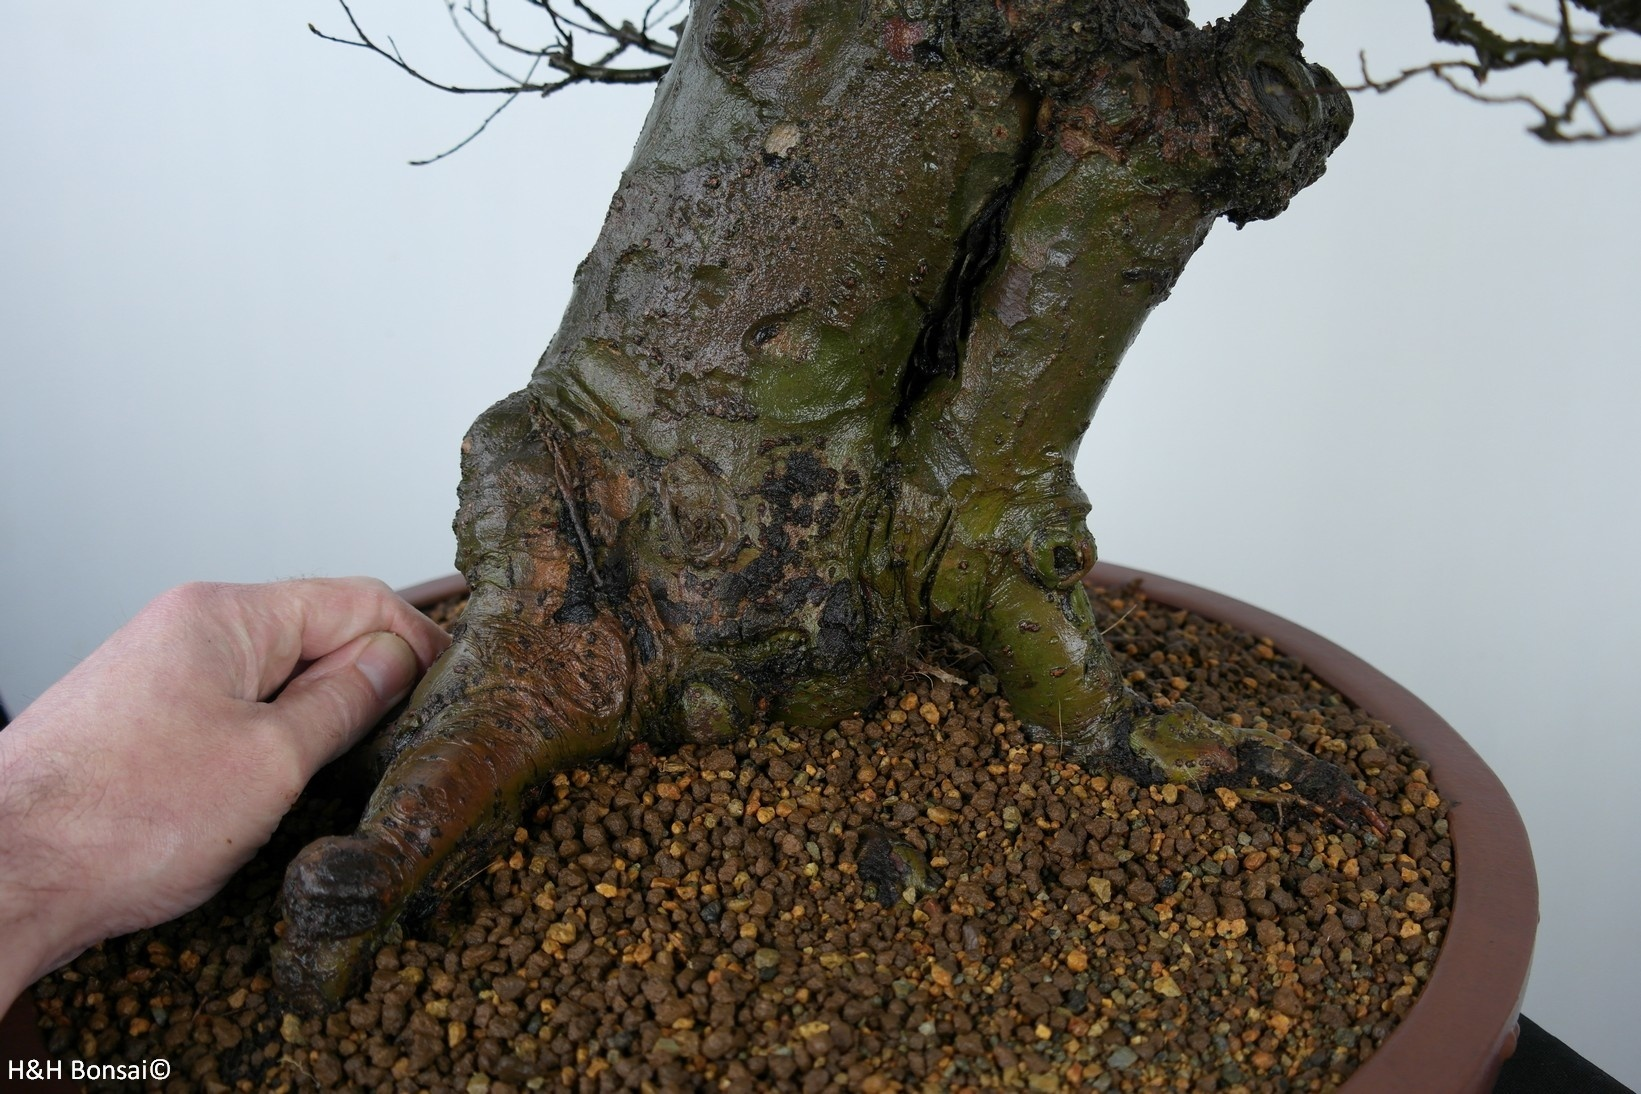 Bonsai Orme de Chine, Ulmus, no. 7519